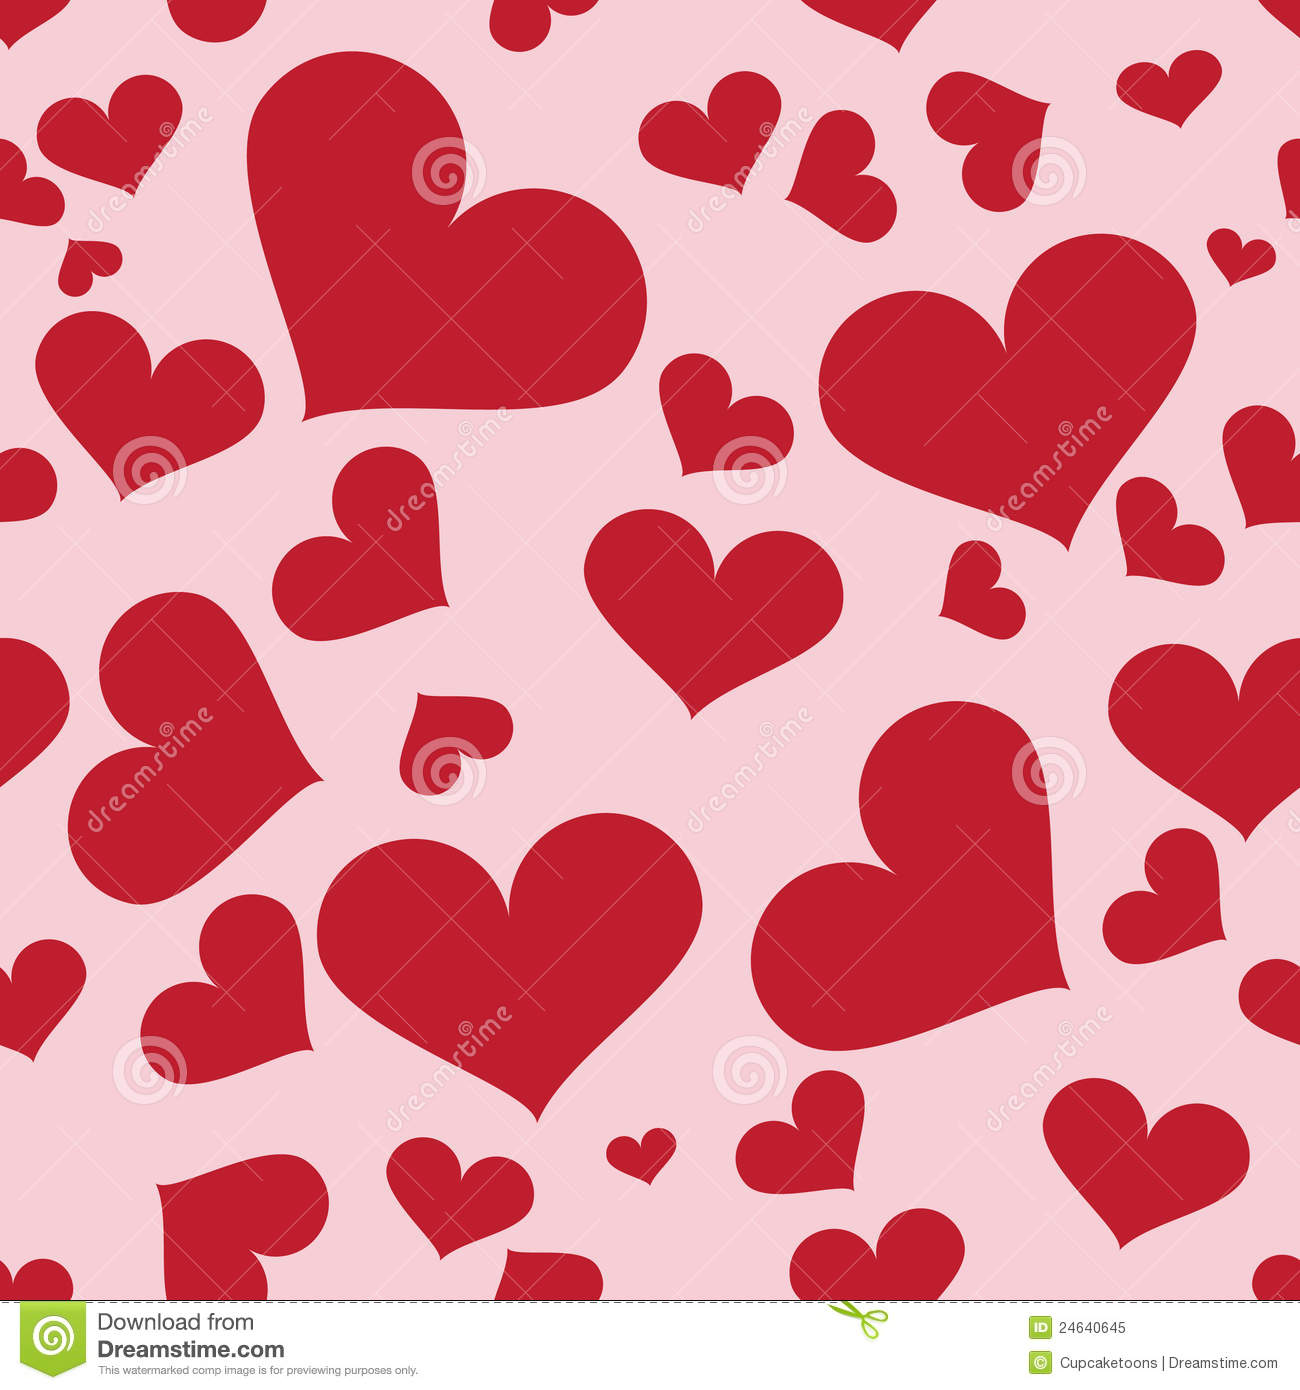 Seamless pattern of many hearts on pink background